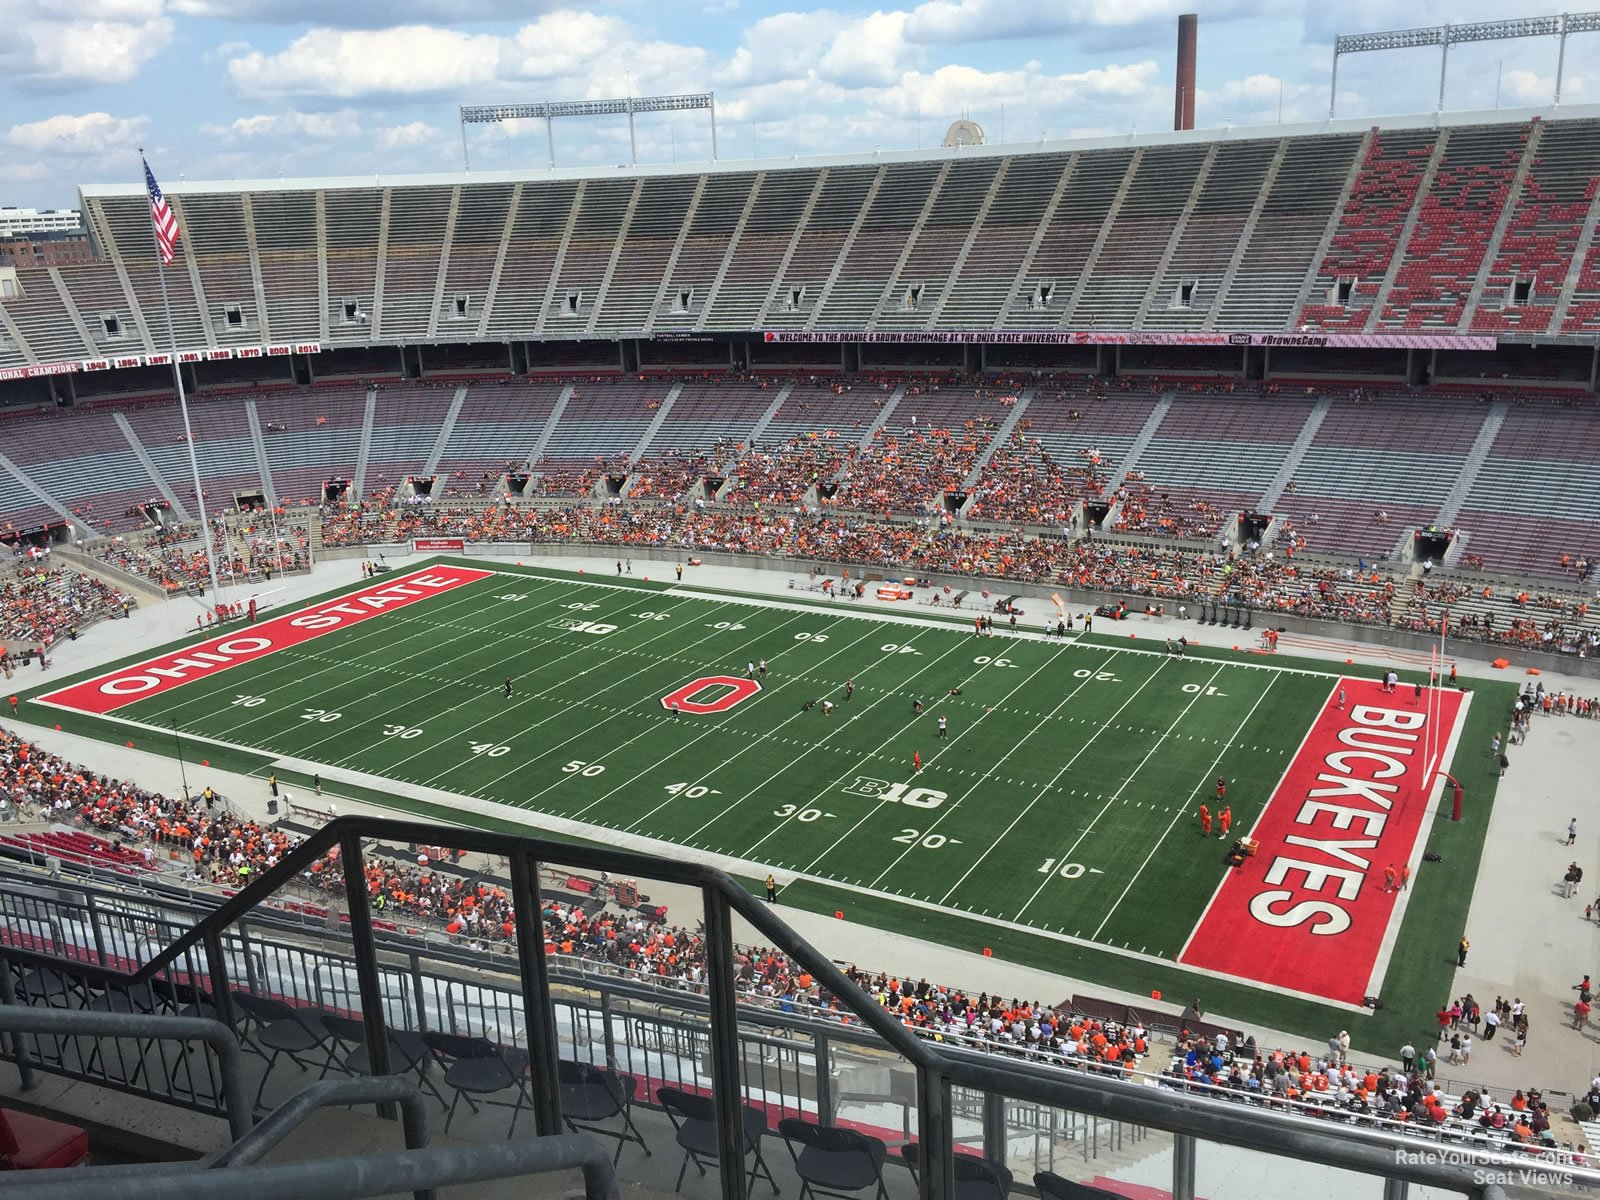 ohio stadium section 29d rateyourseats com